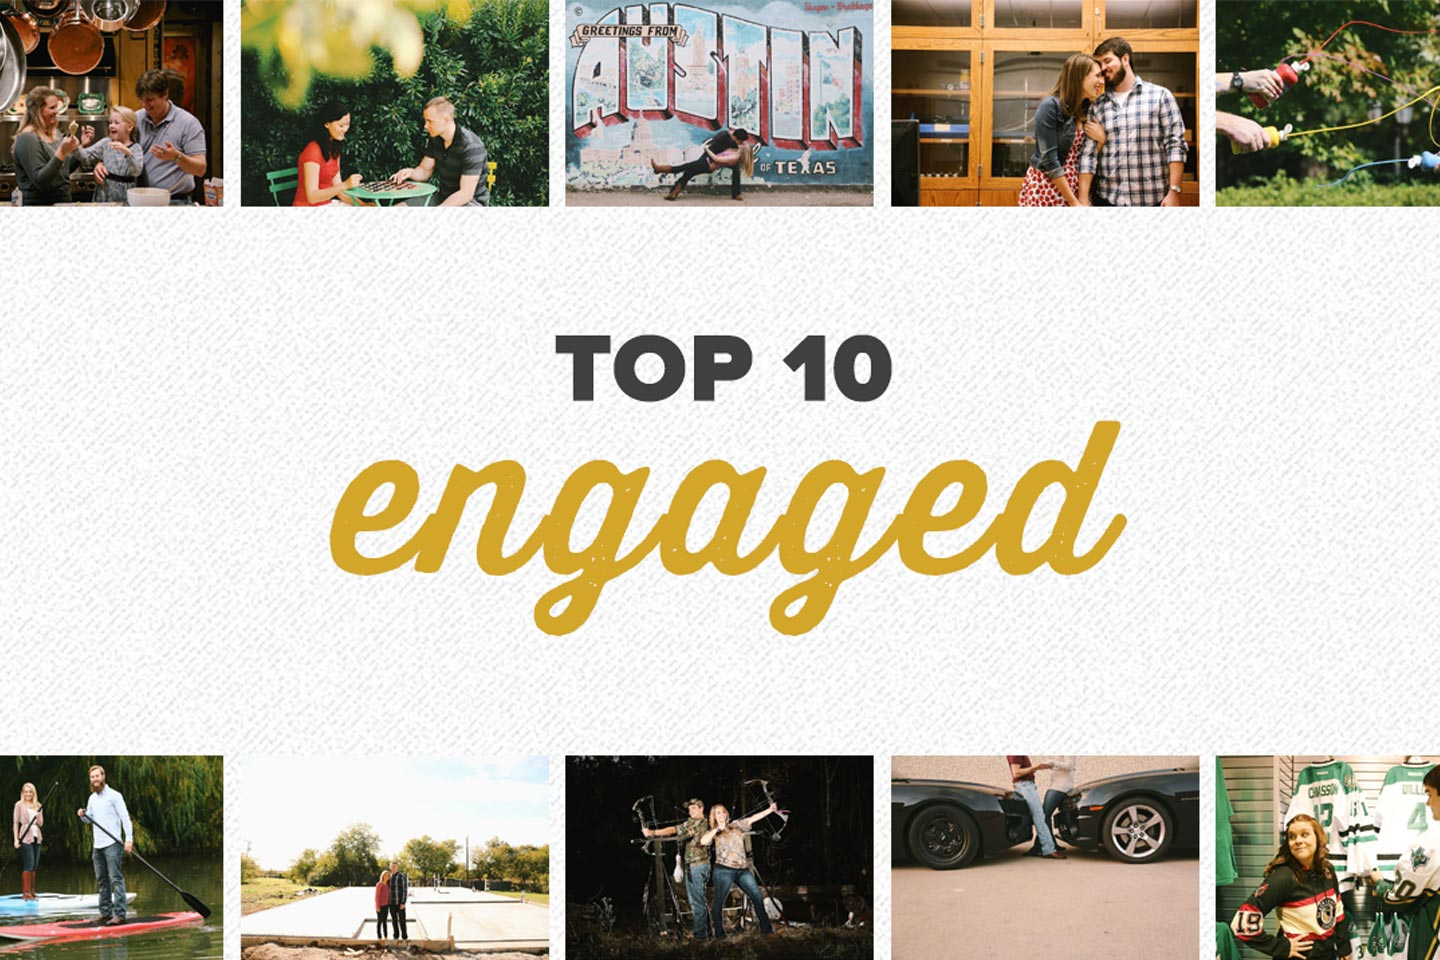 11797Top 10 2013 | Engagement Photos